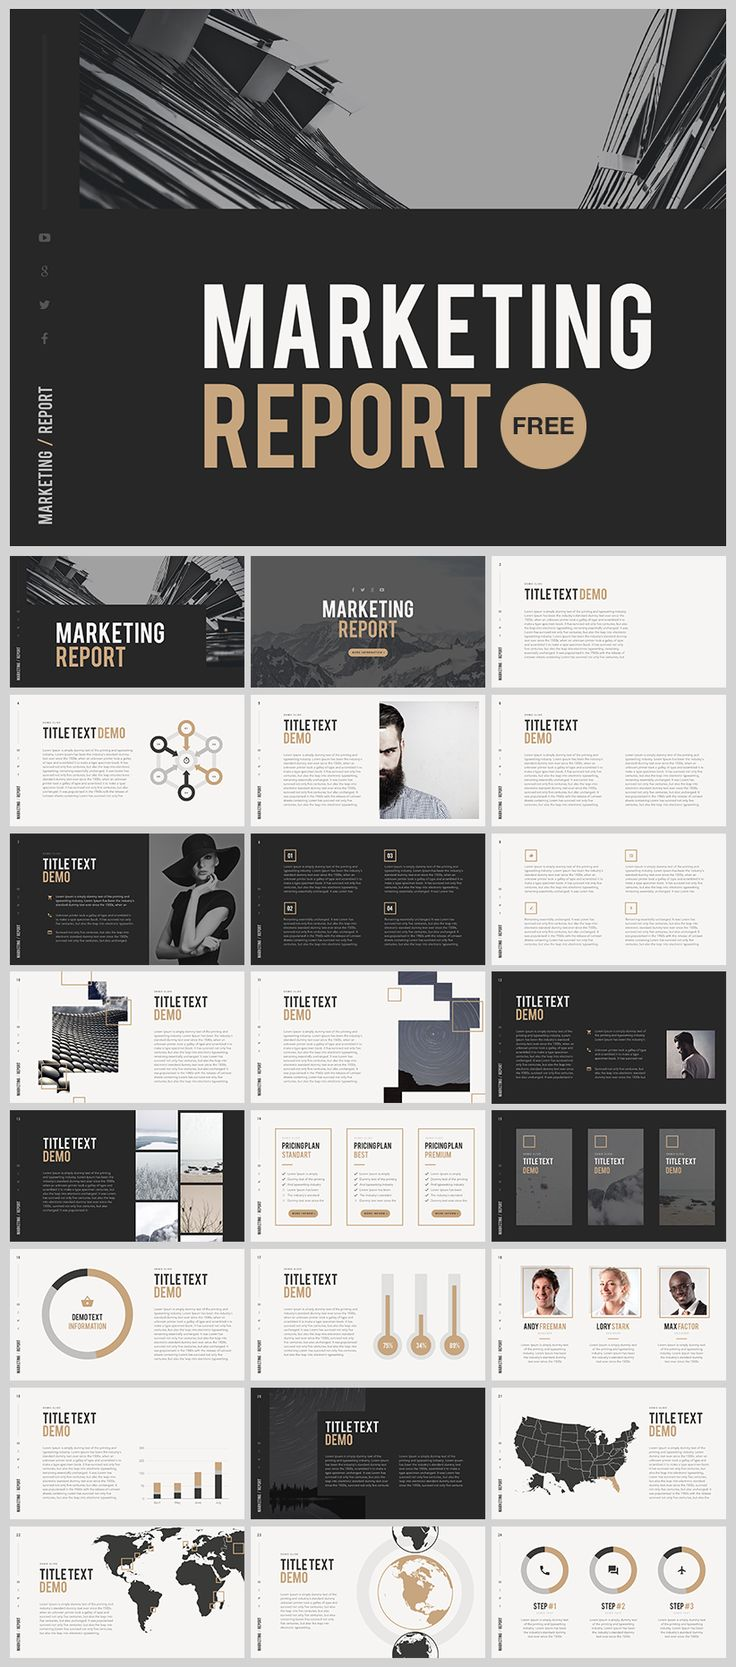 35 best free keynote template images on pinterest circles ideas the marketing report free keynote template is designed to help at work more keynote templates for business and marketing toneelgroepblik Image collections